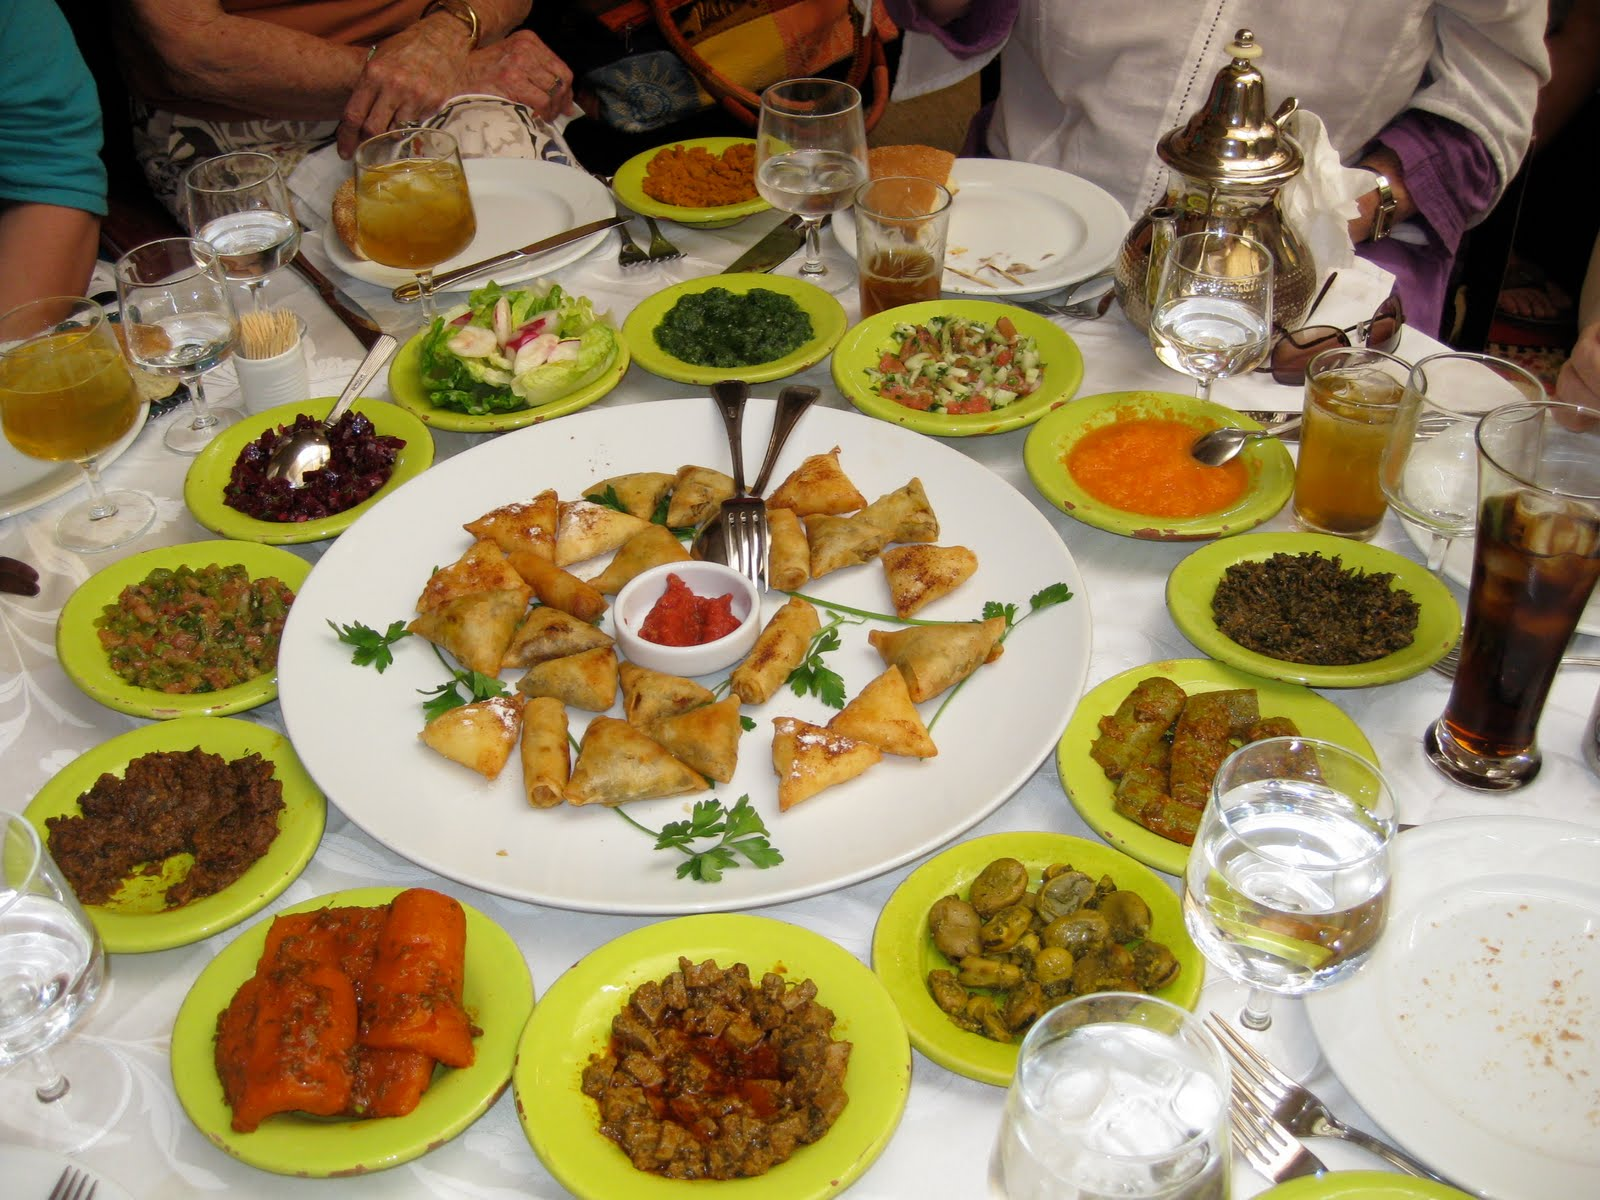 Flavors of the sun moroccan restaurant food for Cuisine culture